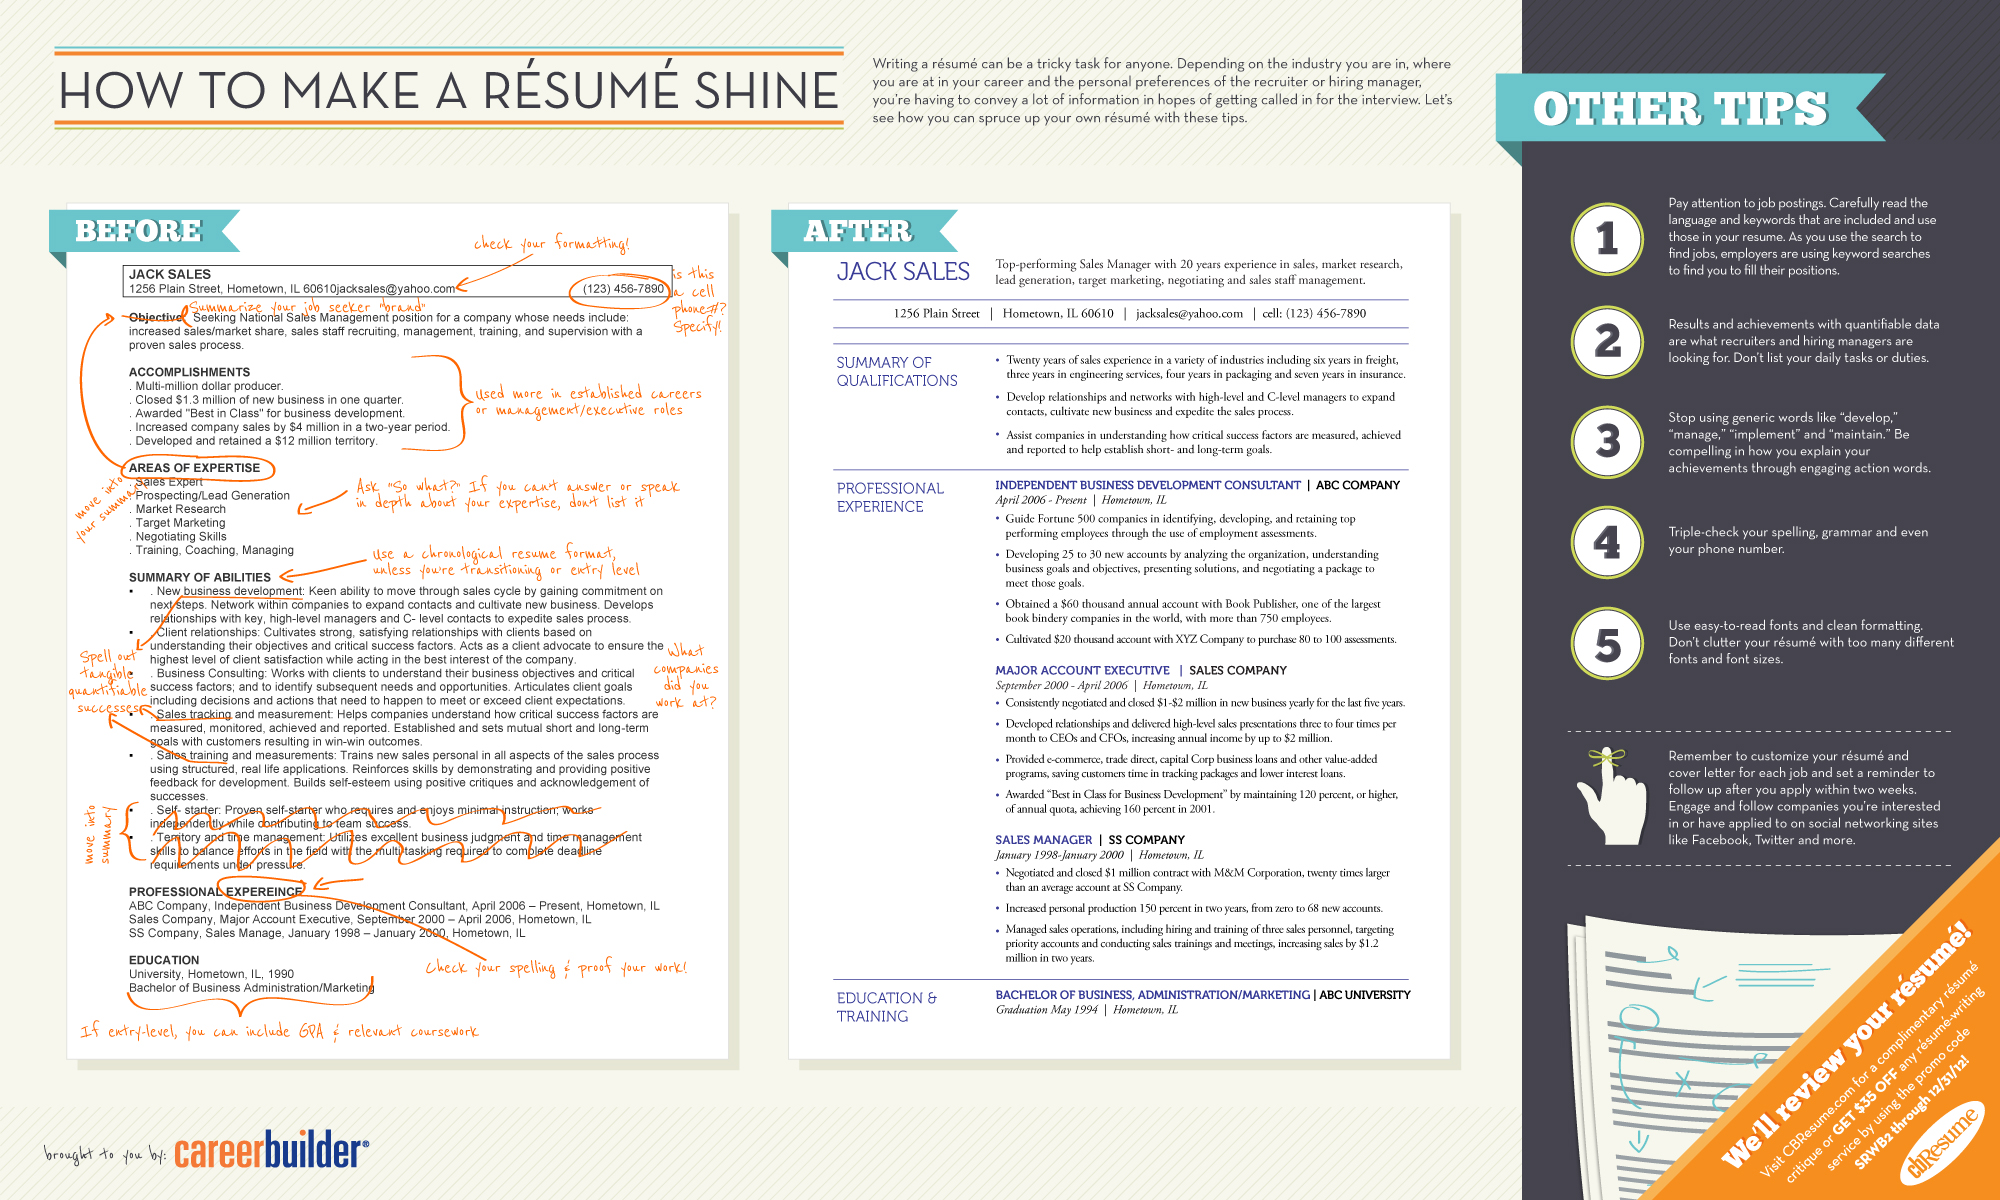 Resume Stand Out Resume make your stand out mtn universal click tips picture to enlarge